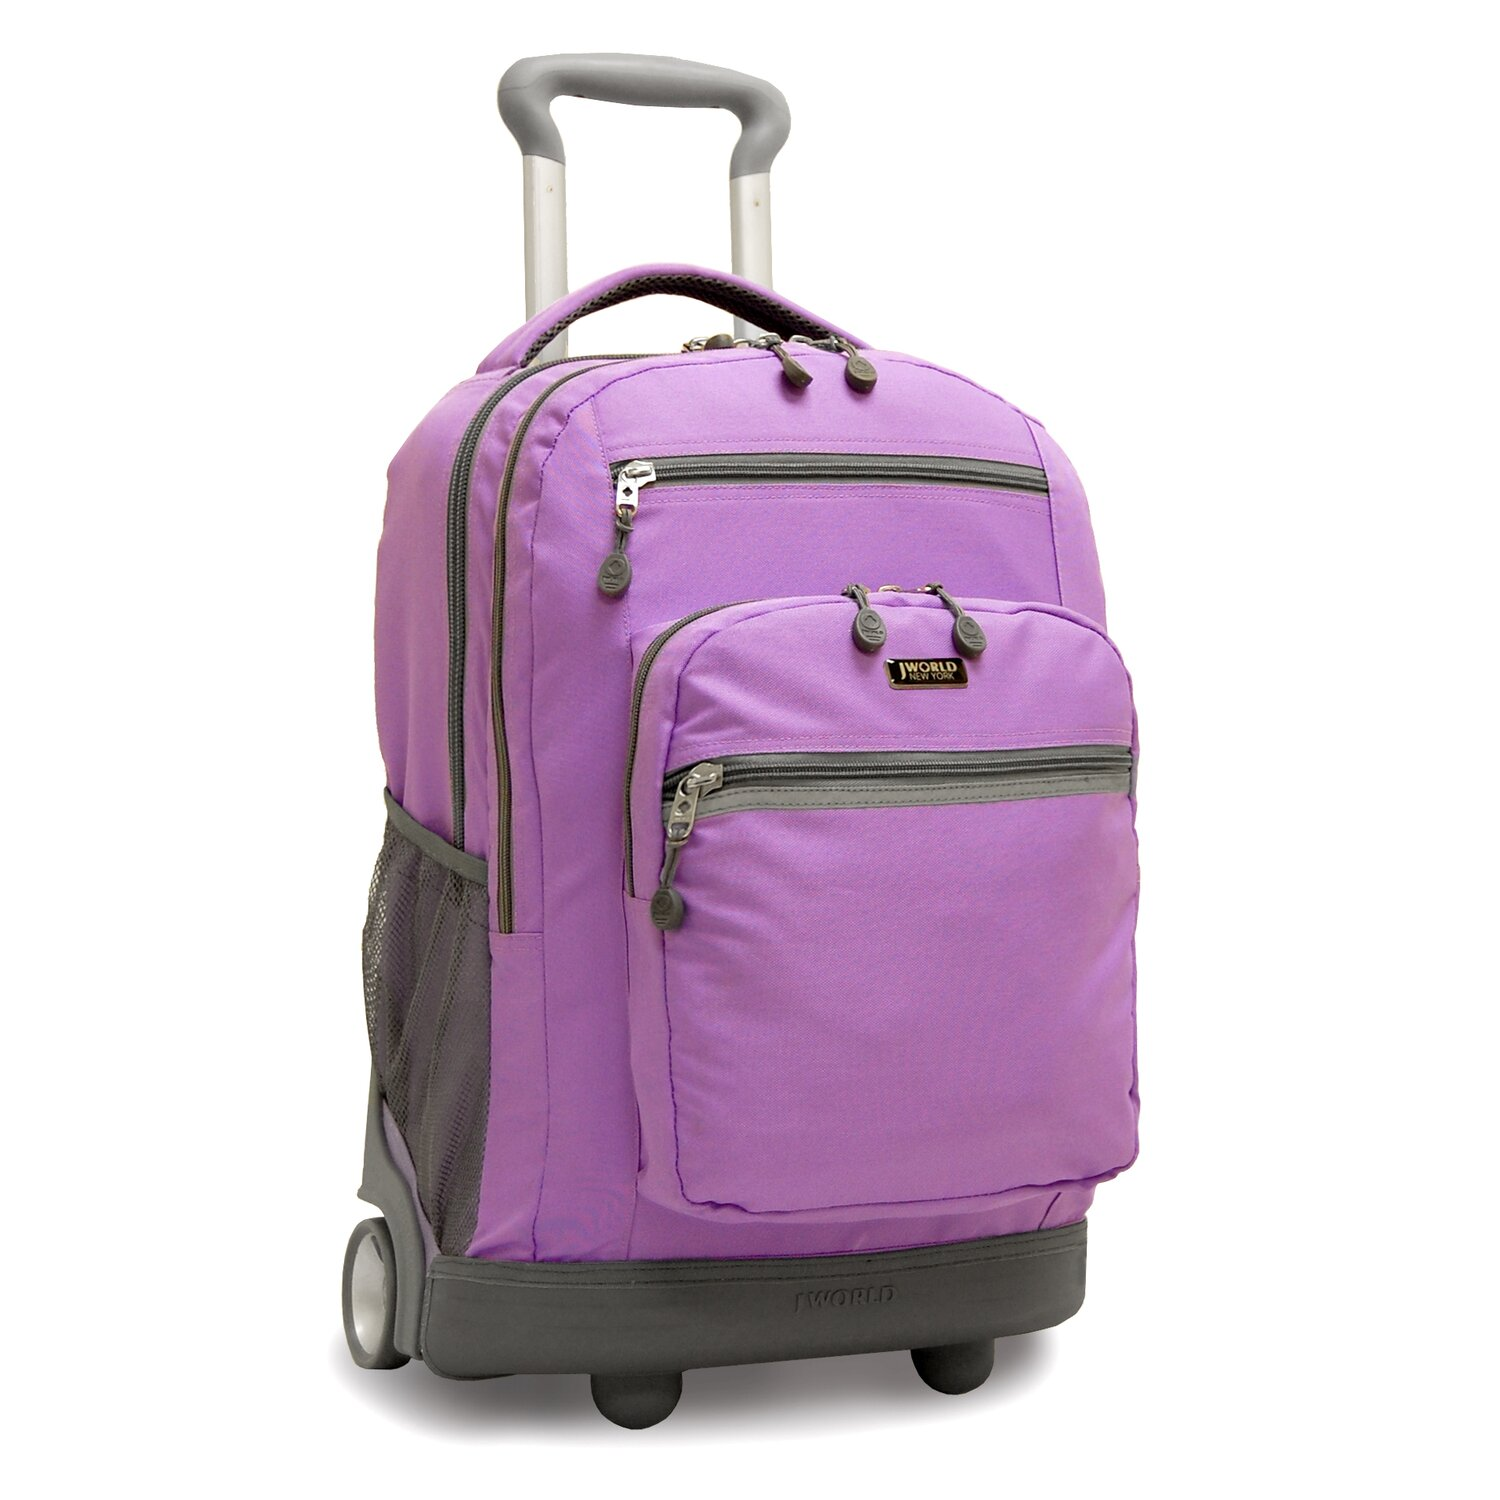 rolling backpacks in stores Backpack Tools